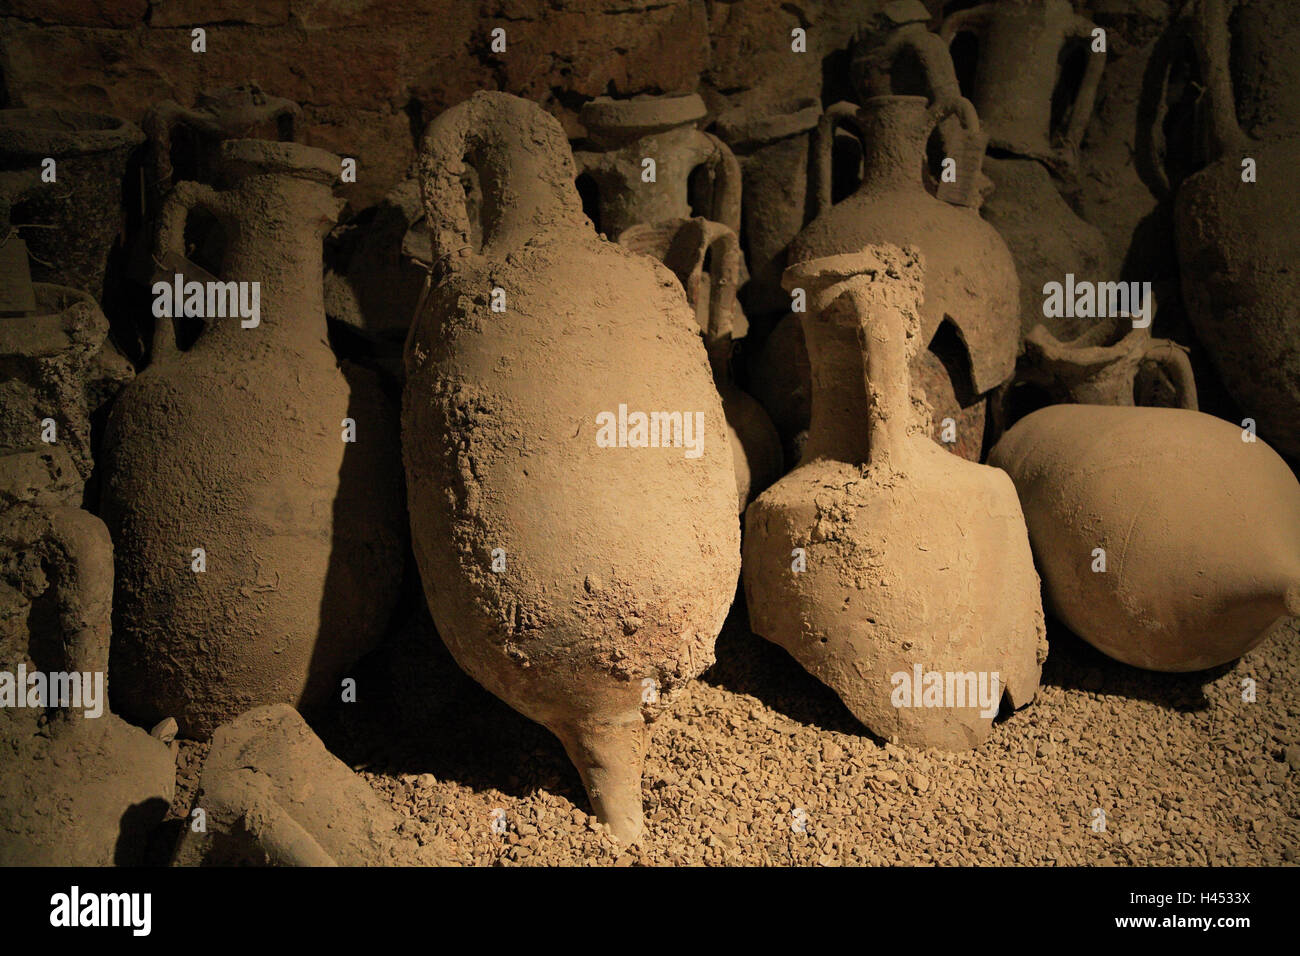 Croatia, Istria, Pula, arena, museum, excavations, tone vessels, detail, Europe, destination, town, place of interest, - Stock Image